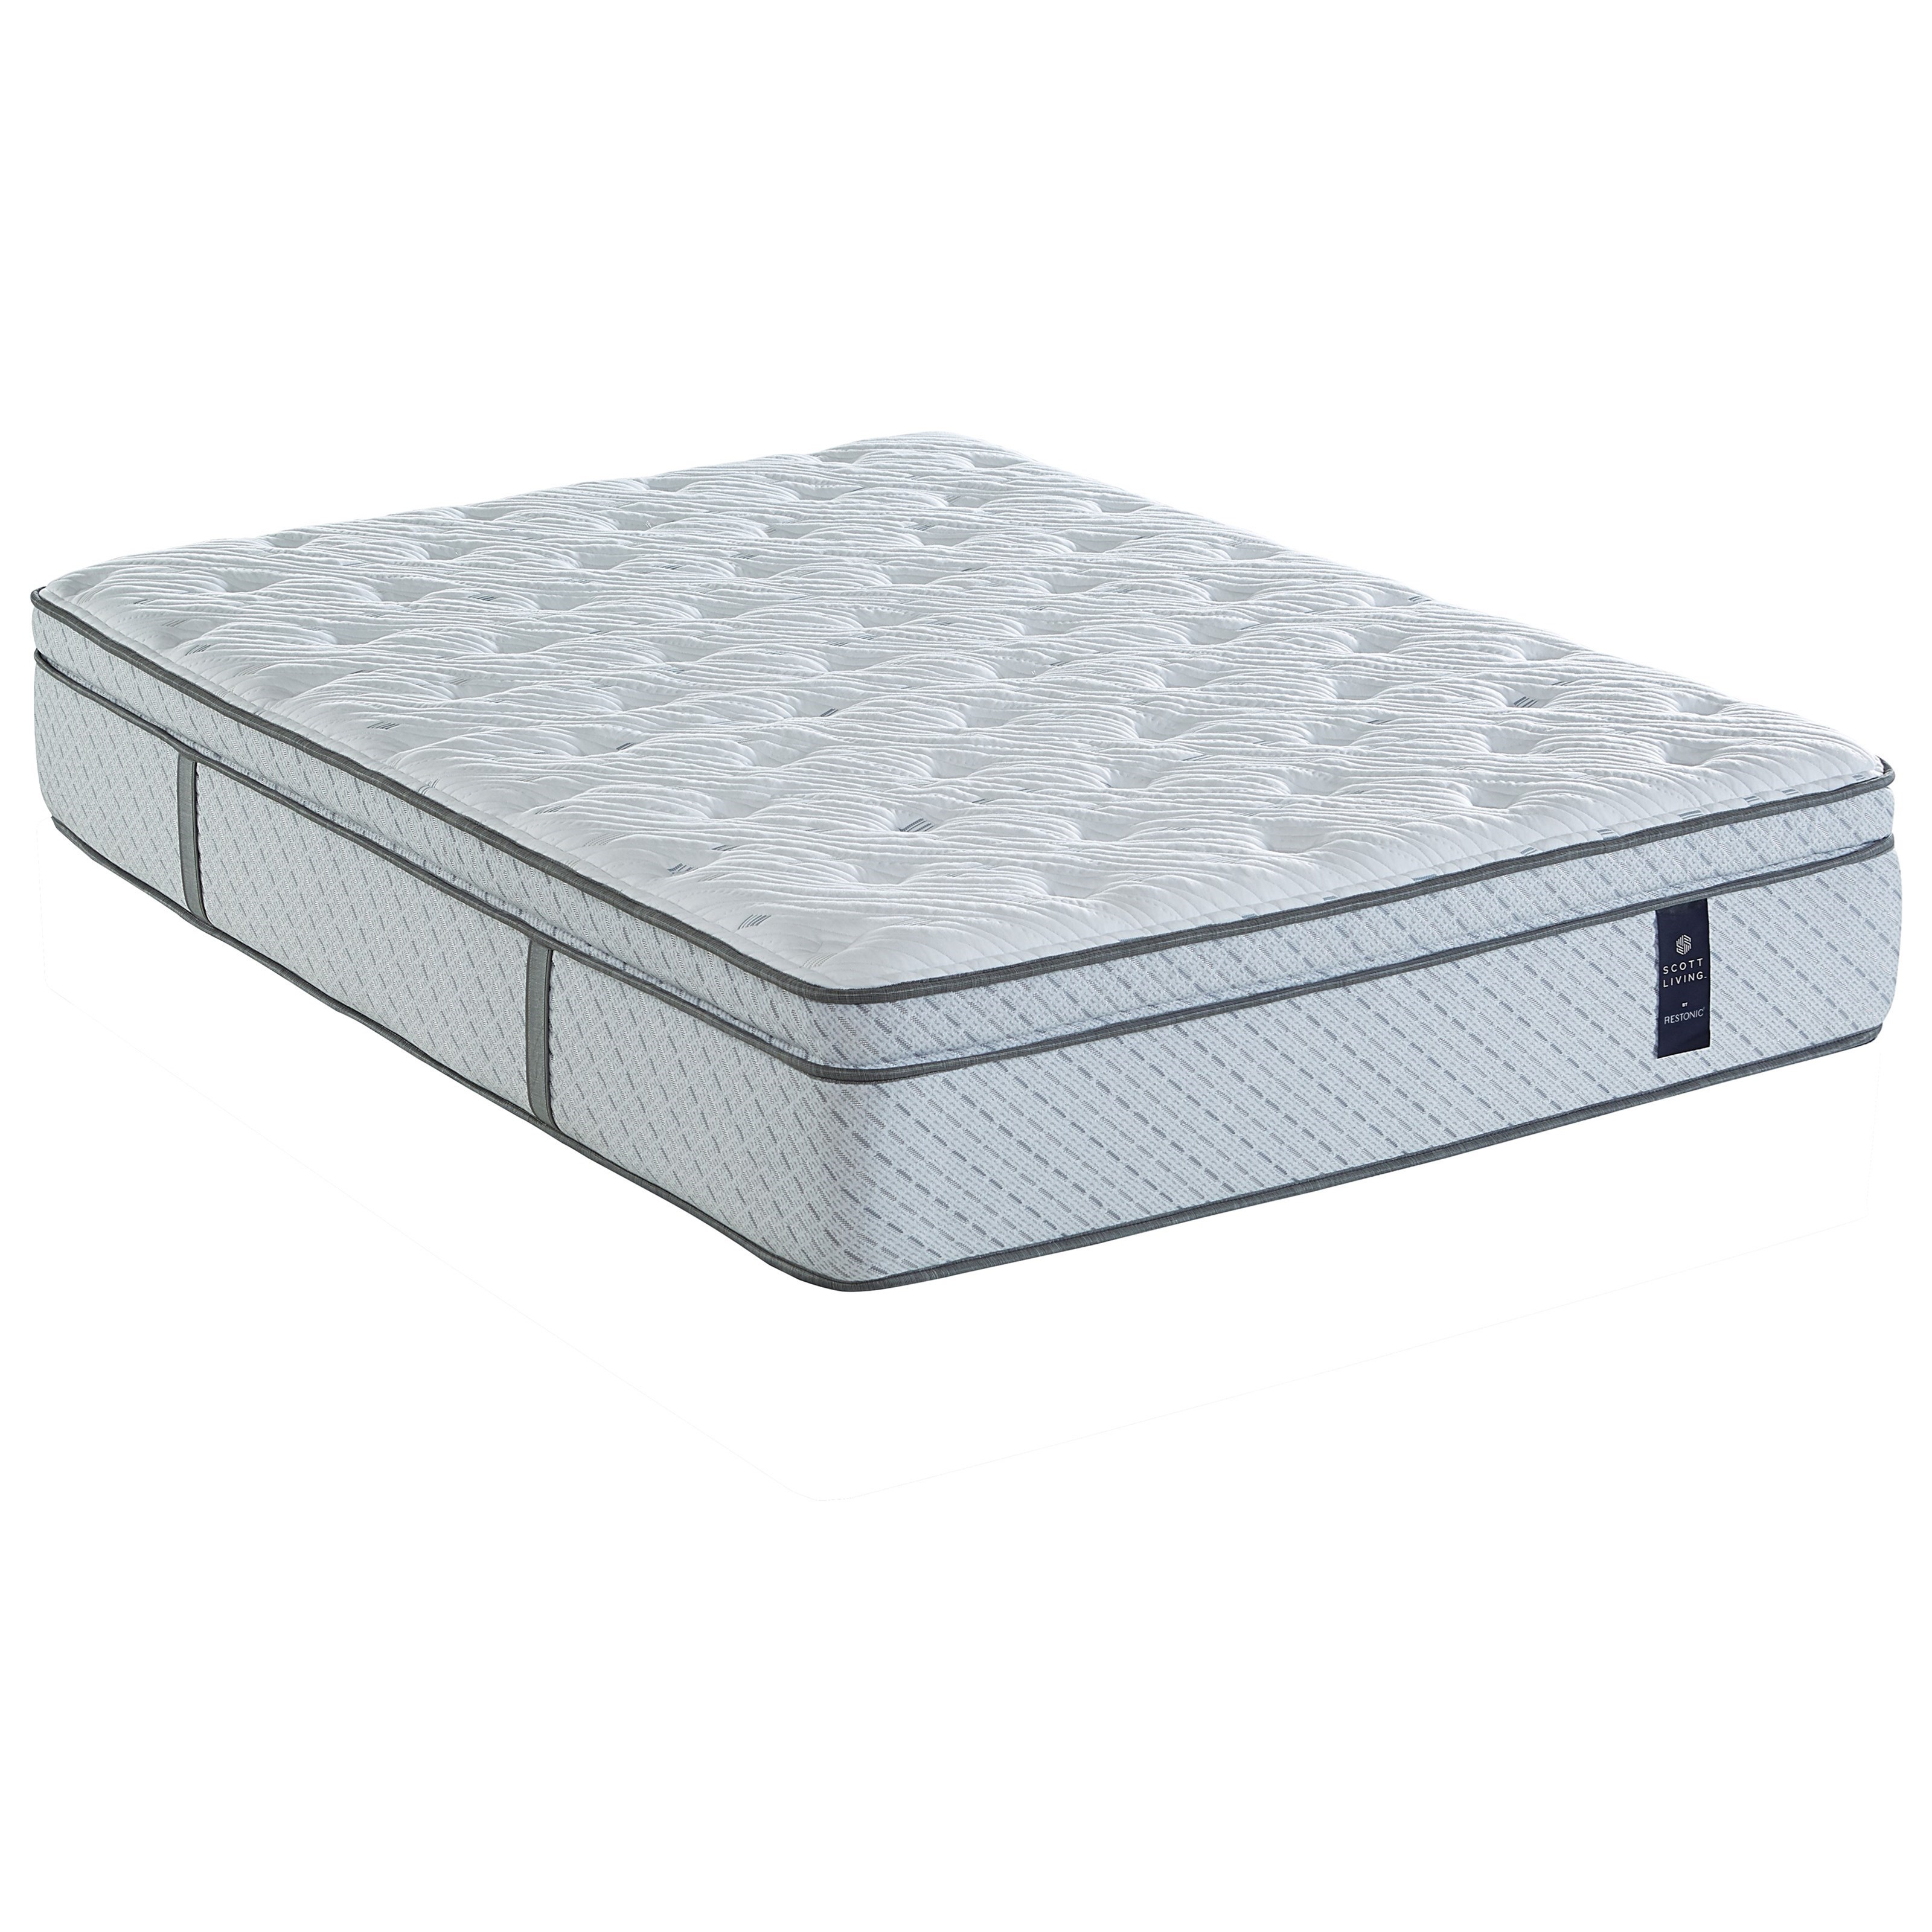 Juniper Euro Top Queen Pocketed Coil Mattress by Restonic at O'Dunk & O'Bright Furniture